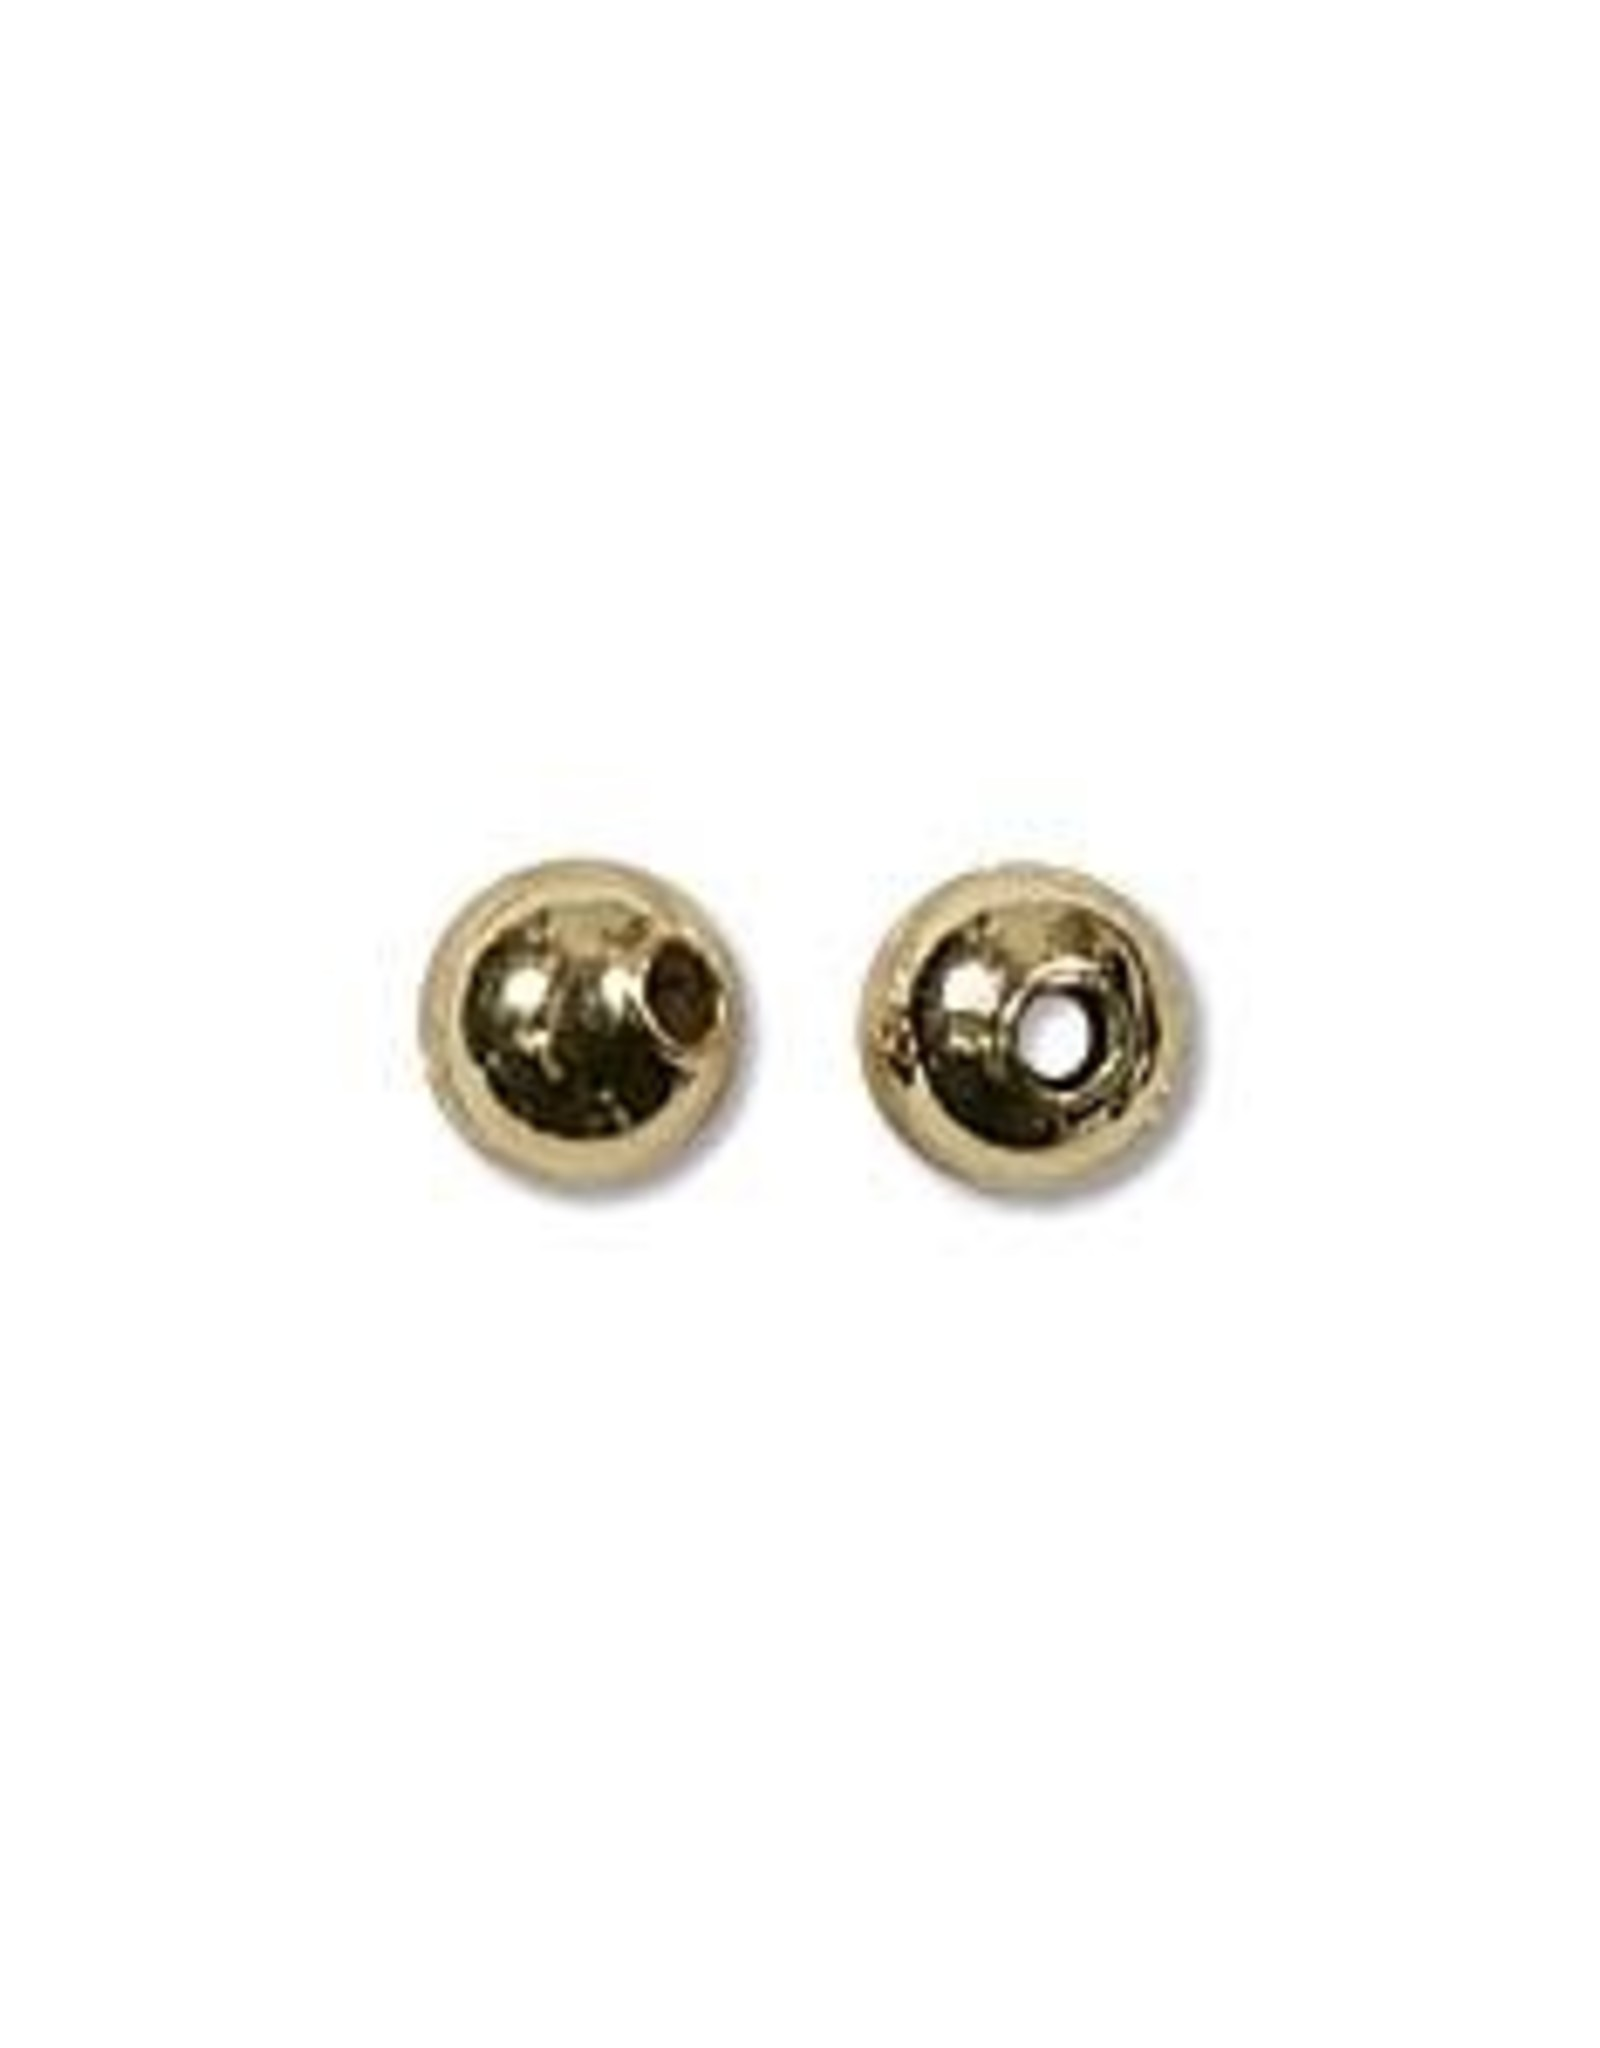 4mm Round Bead Gold Plated Qty 144